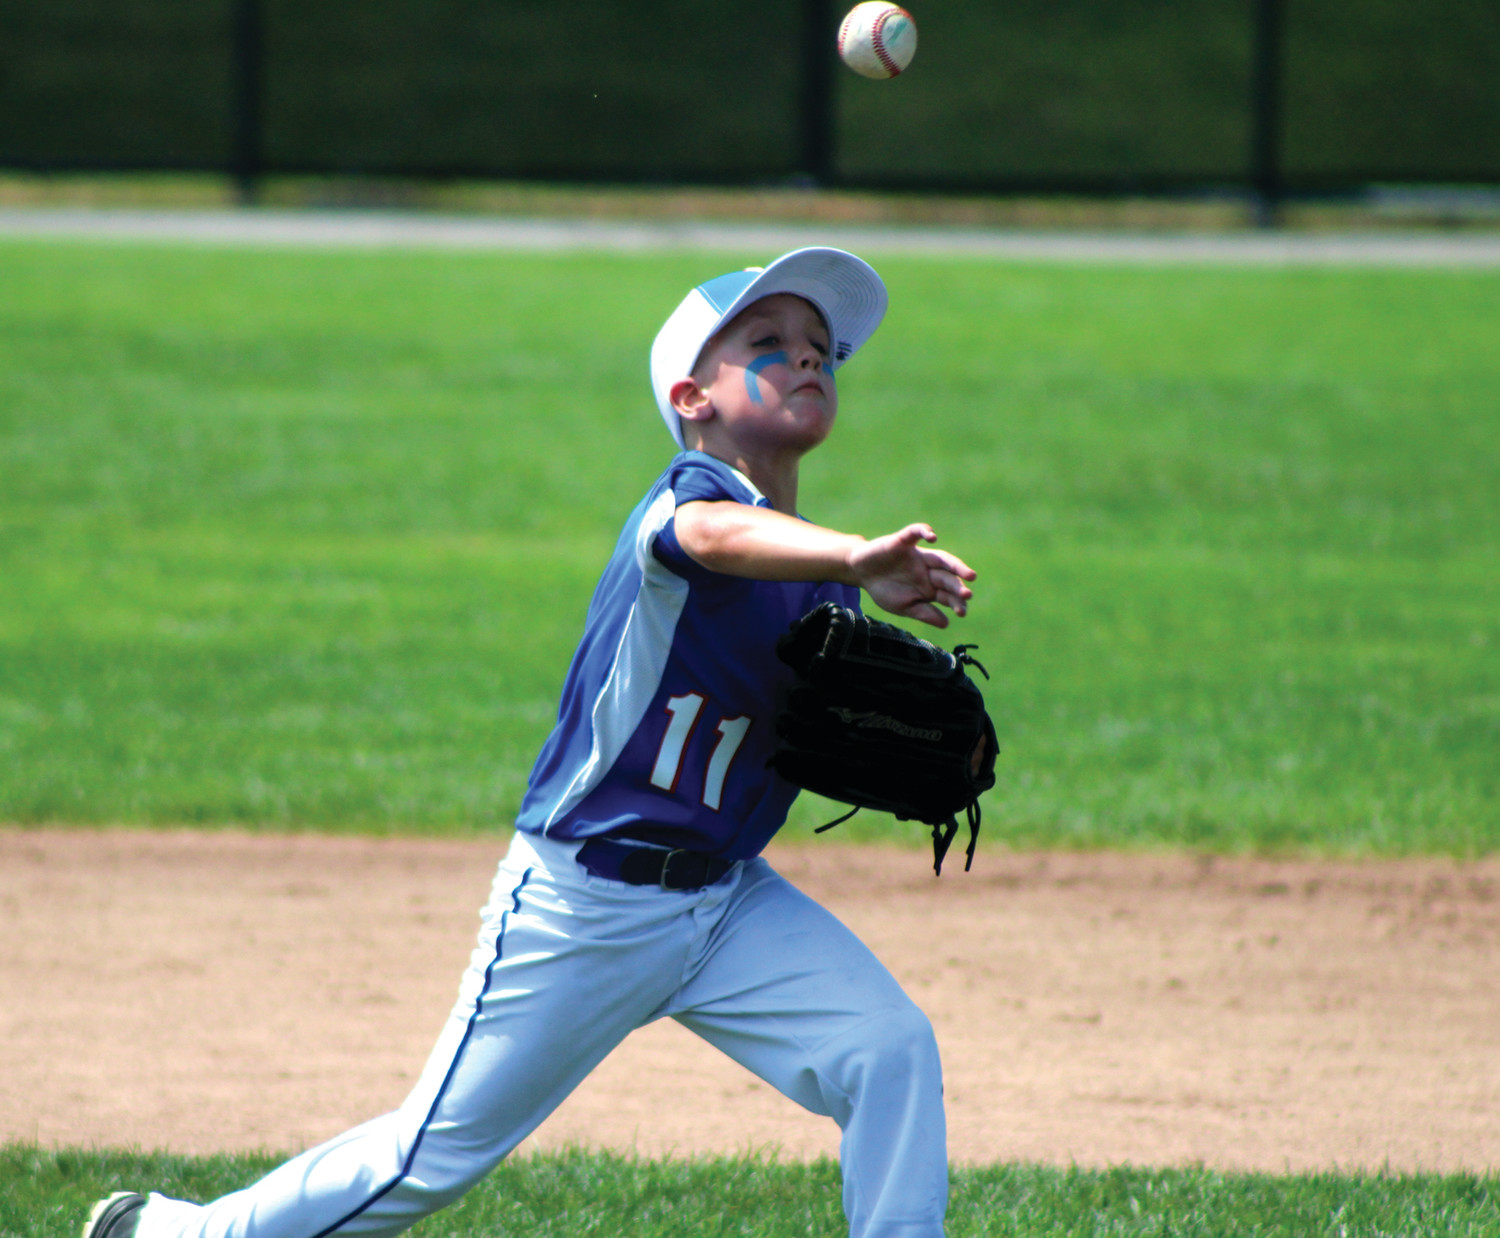 Warwick Continental infielder Charlie Brown makes a throw to first base.